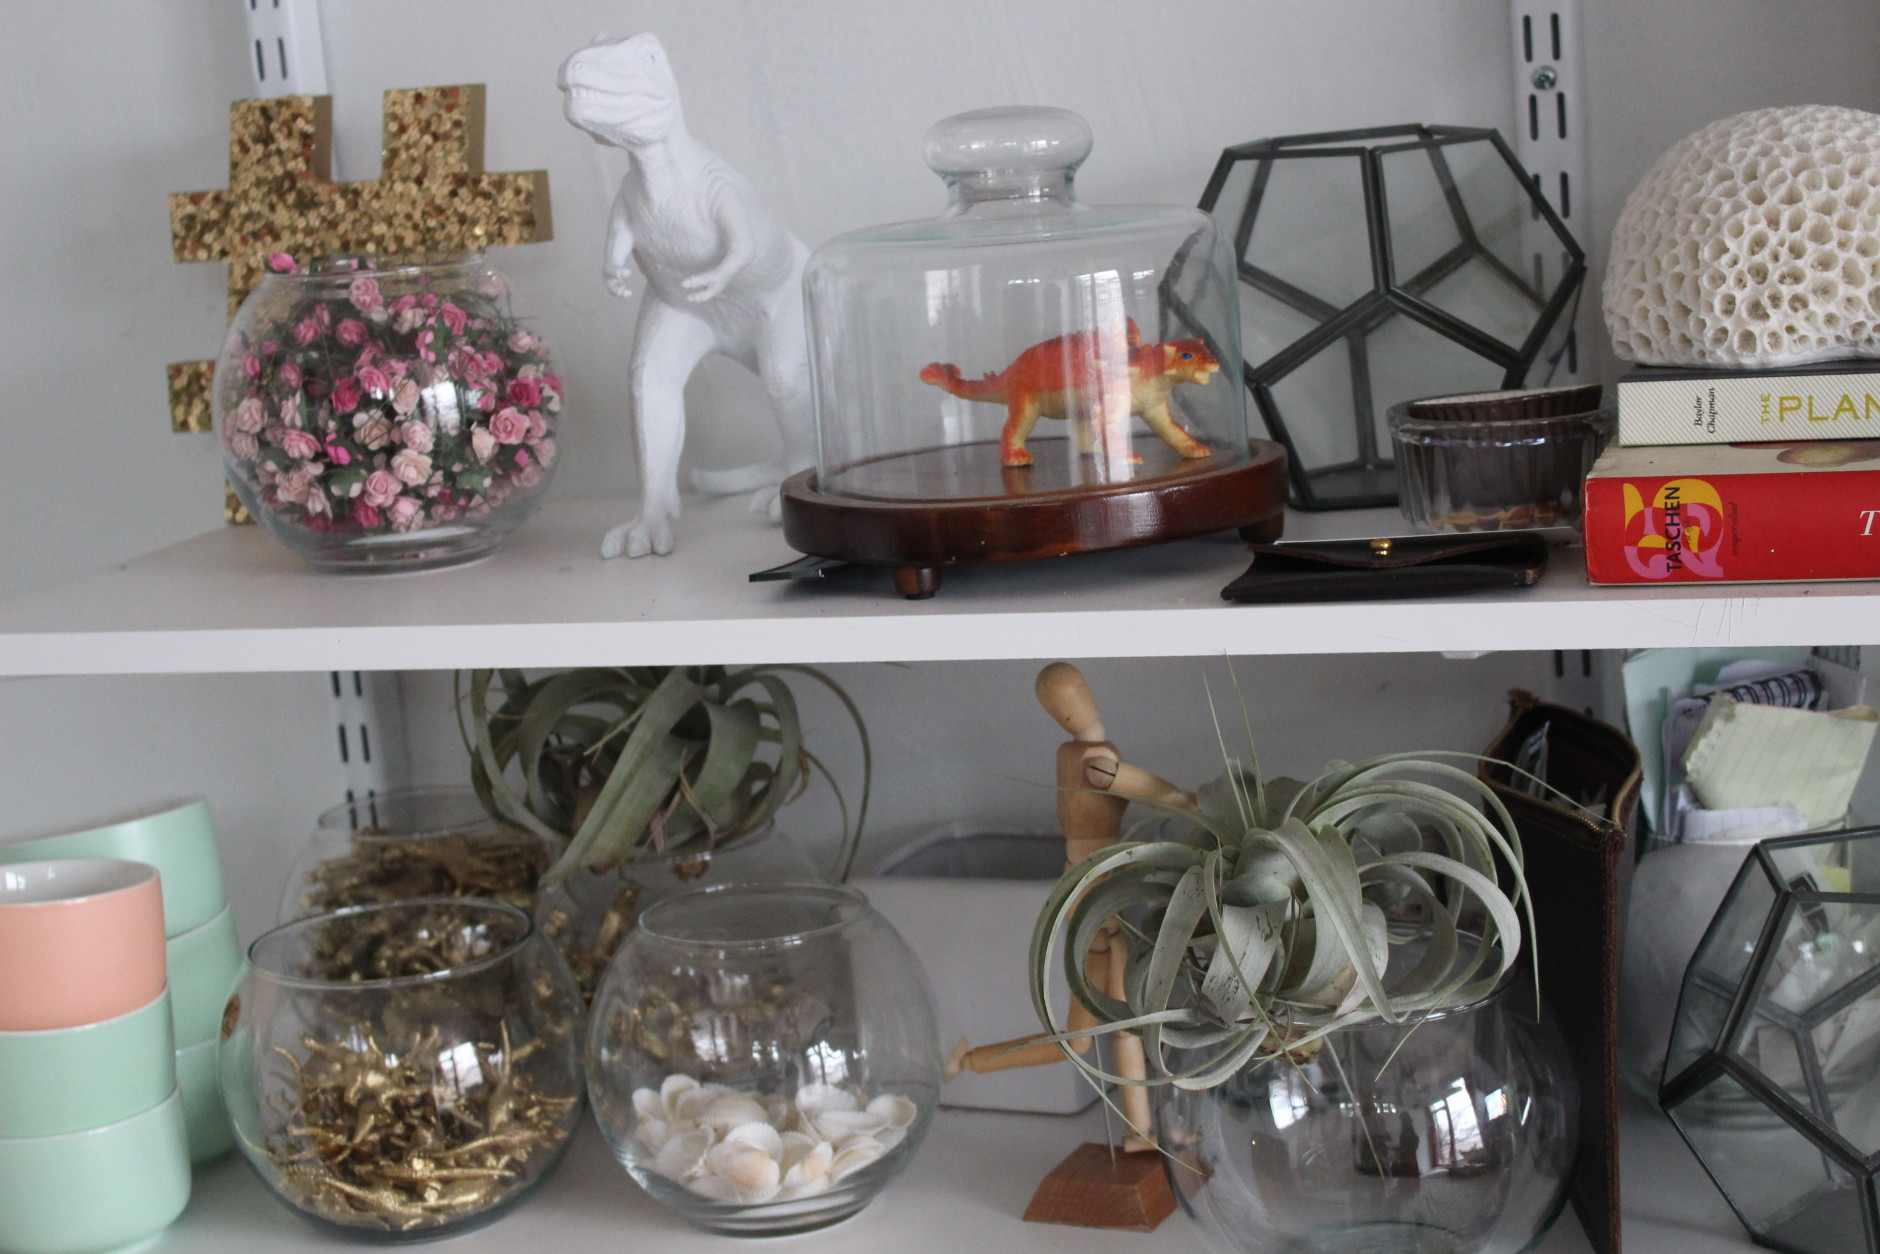 For would-be DIYers that may be intimidated by the beautiful finished products found on Instagram, Tumblr and Pinterest, Giffen says crafters of all skill levels are welcome and encouraged to experiment. (WTOP/Dana Gooley)